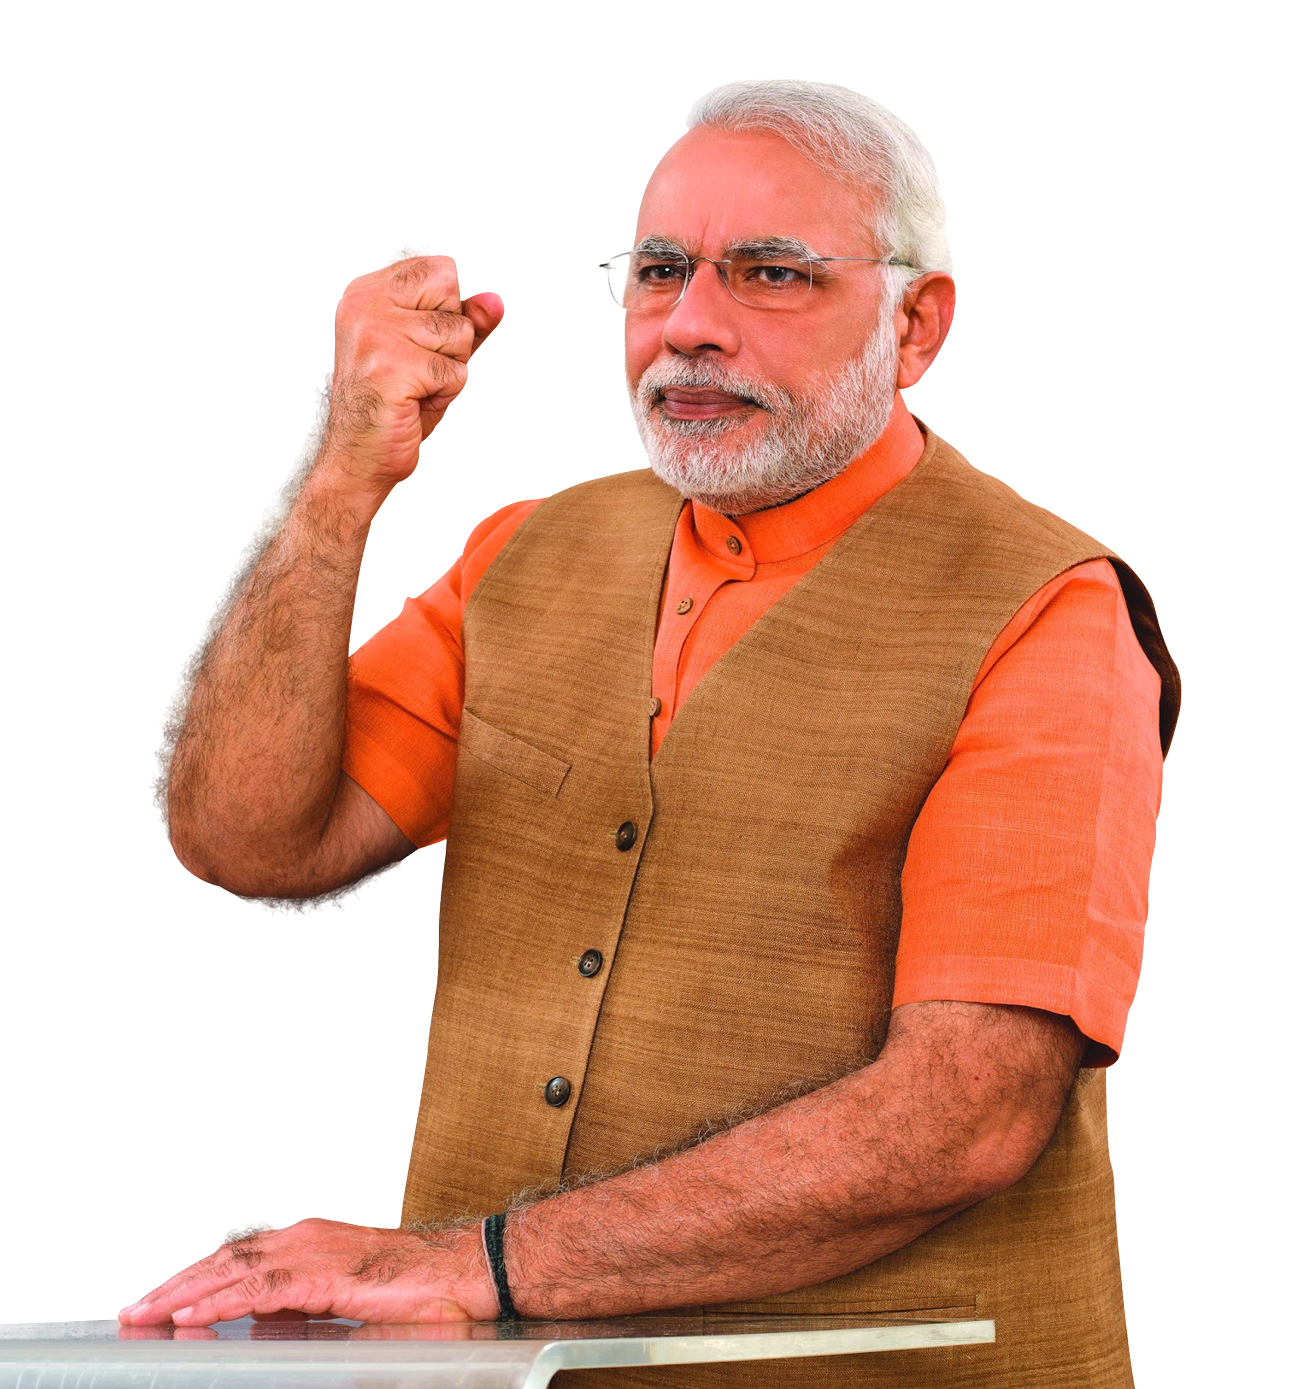 Prime Of India Narendra Minister Modi Transparent PNG Image